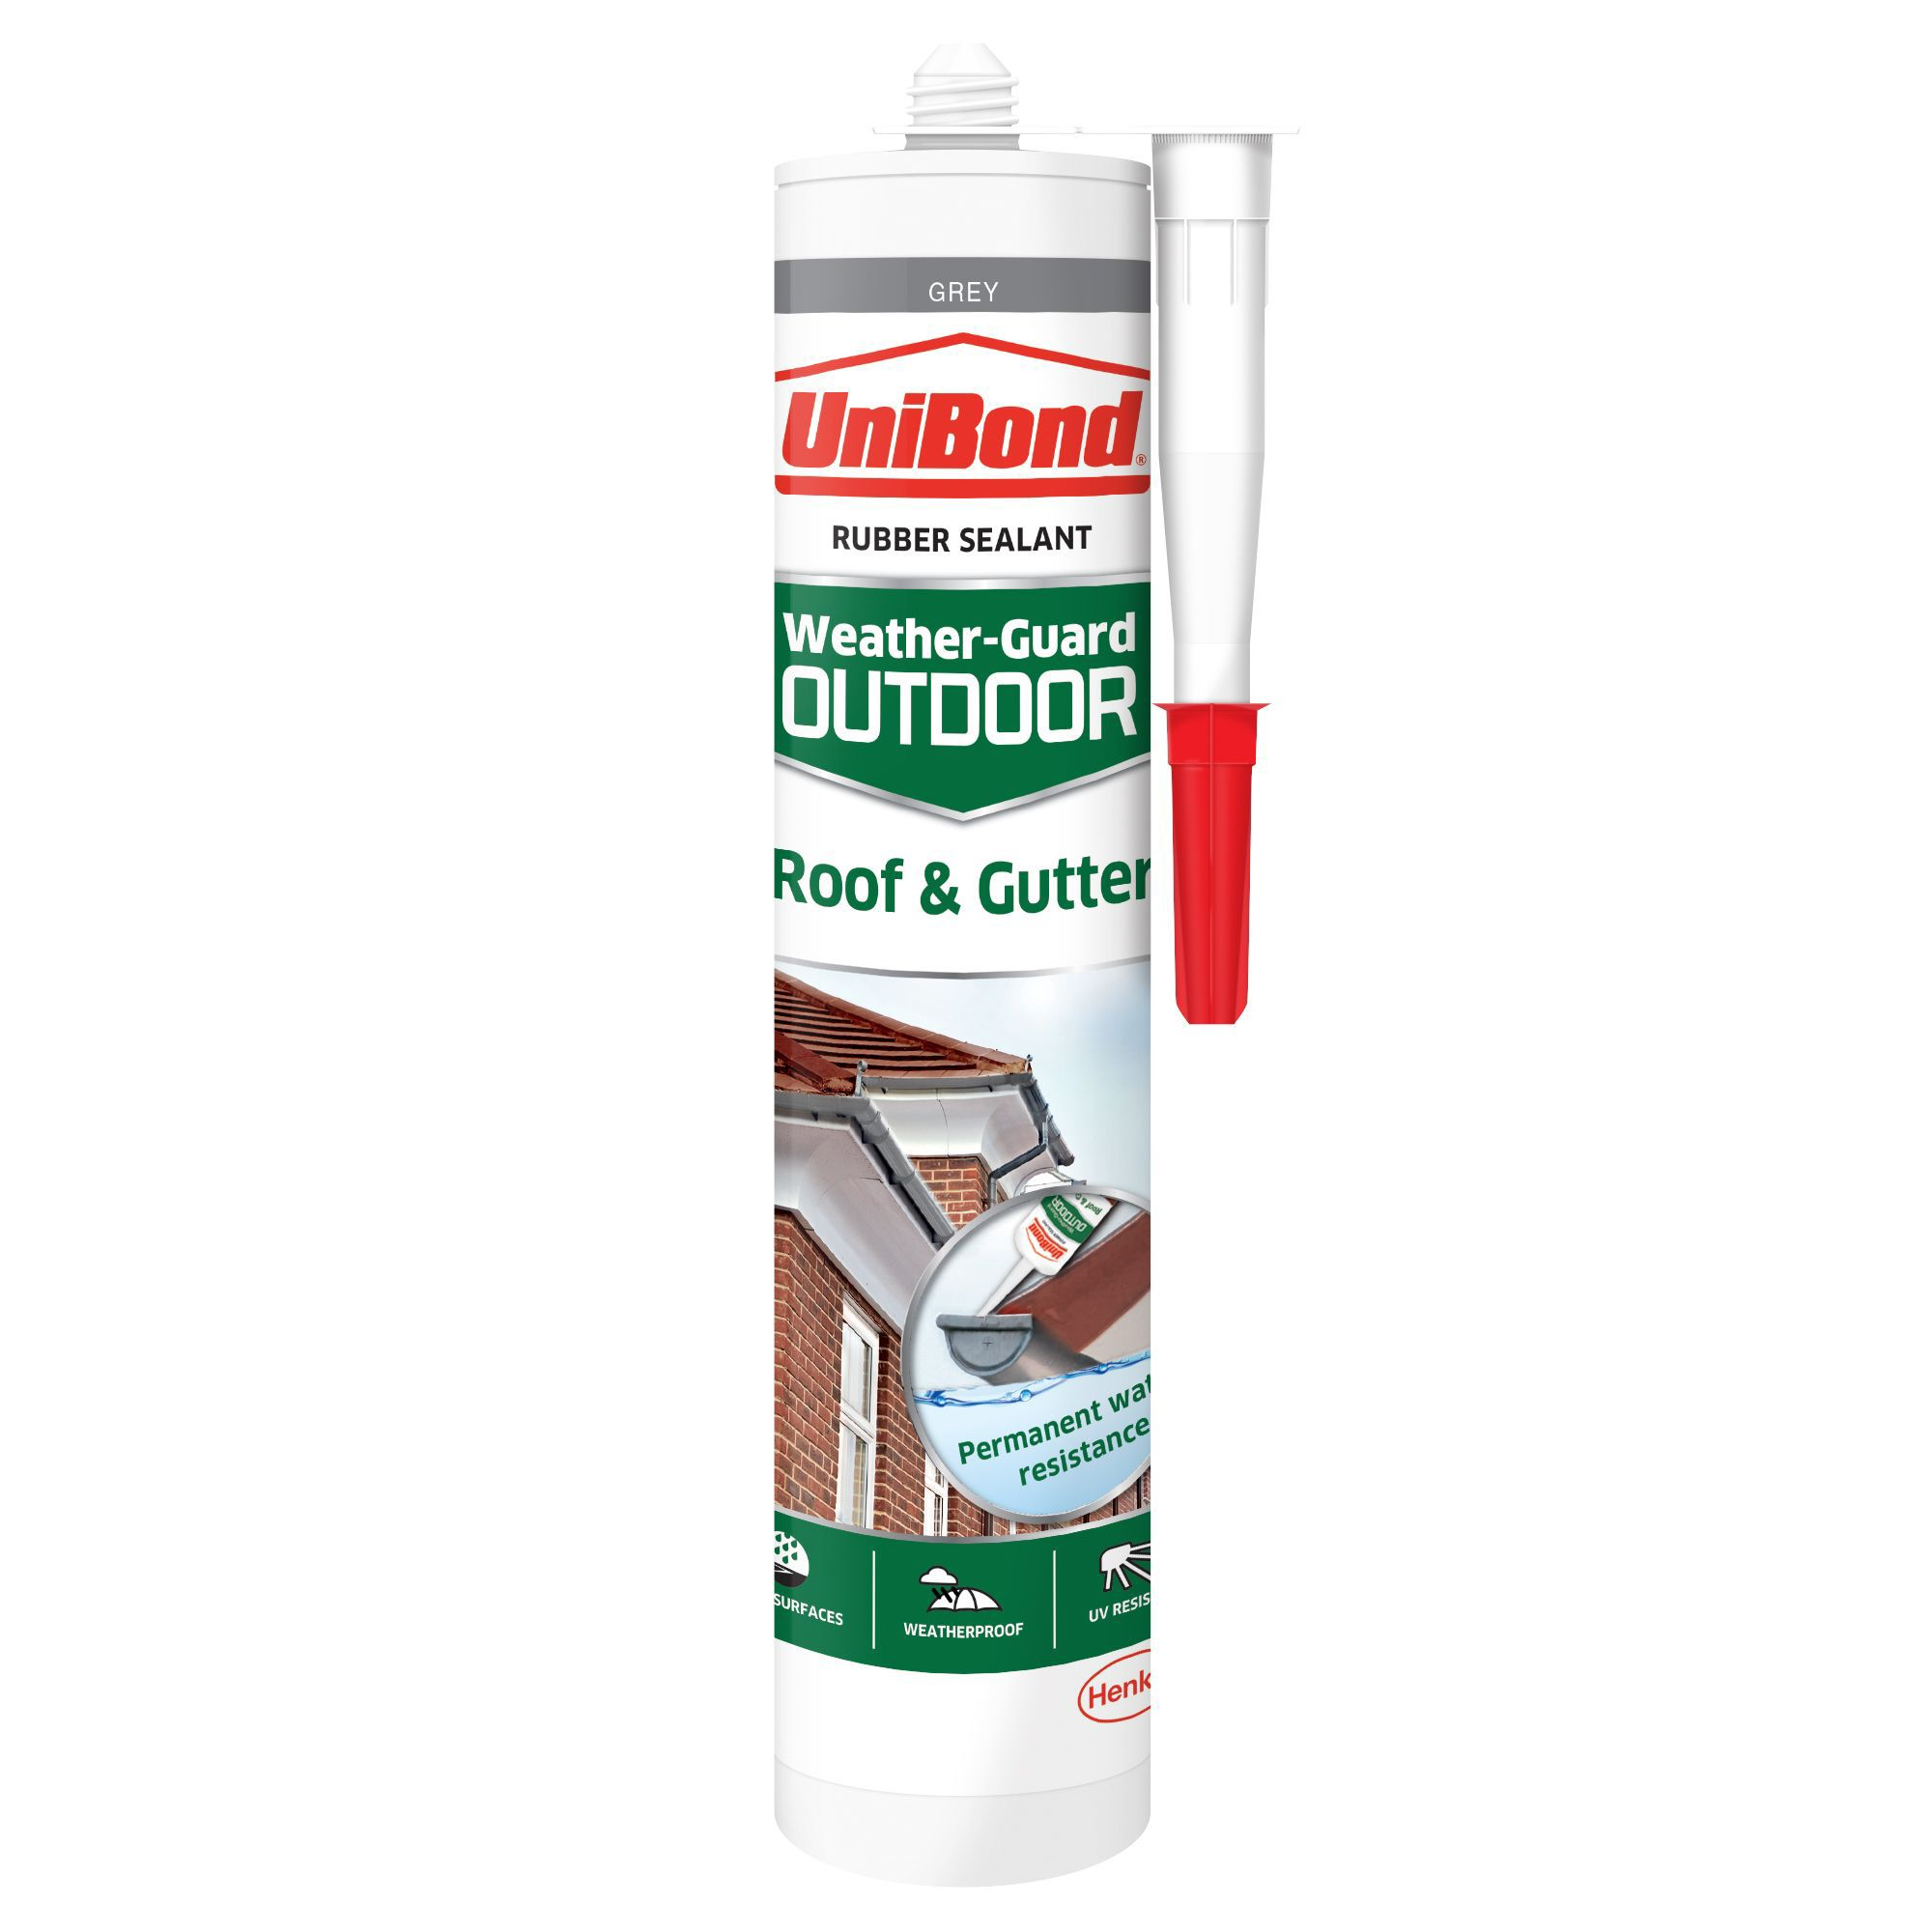 Unibond Weather Guard Outdoor Grey Roof Amp Gutter Sealant